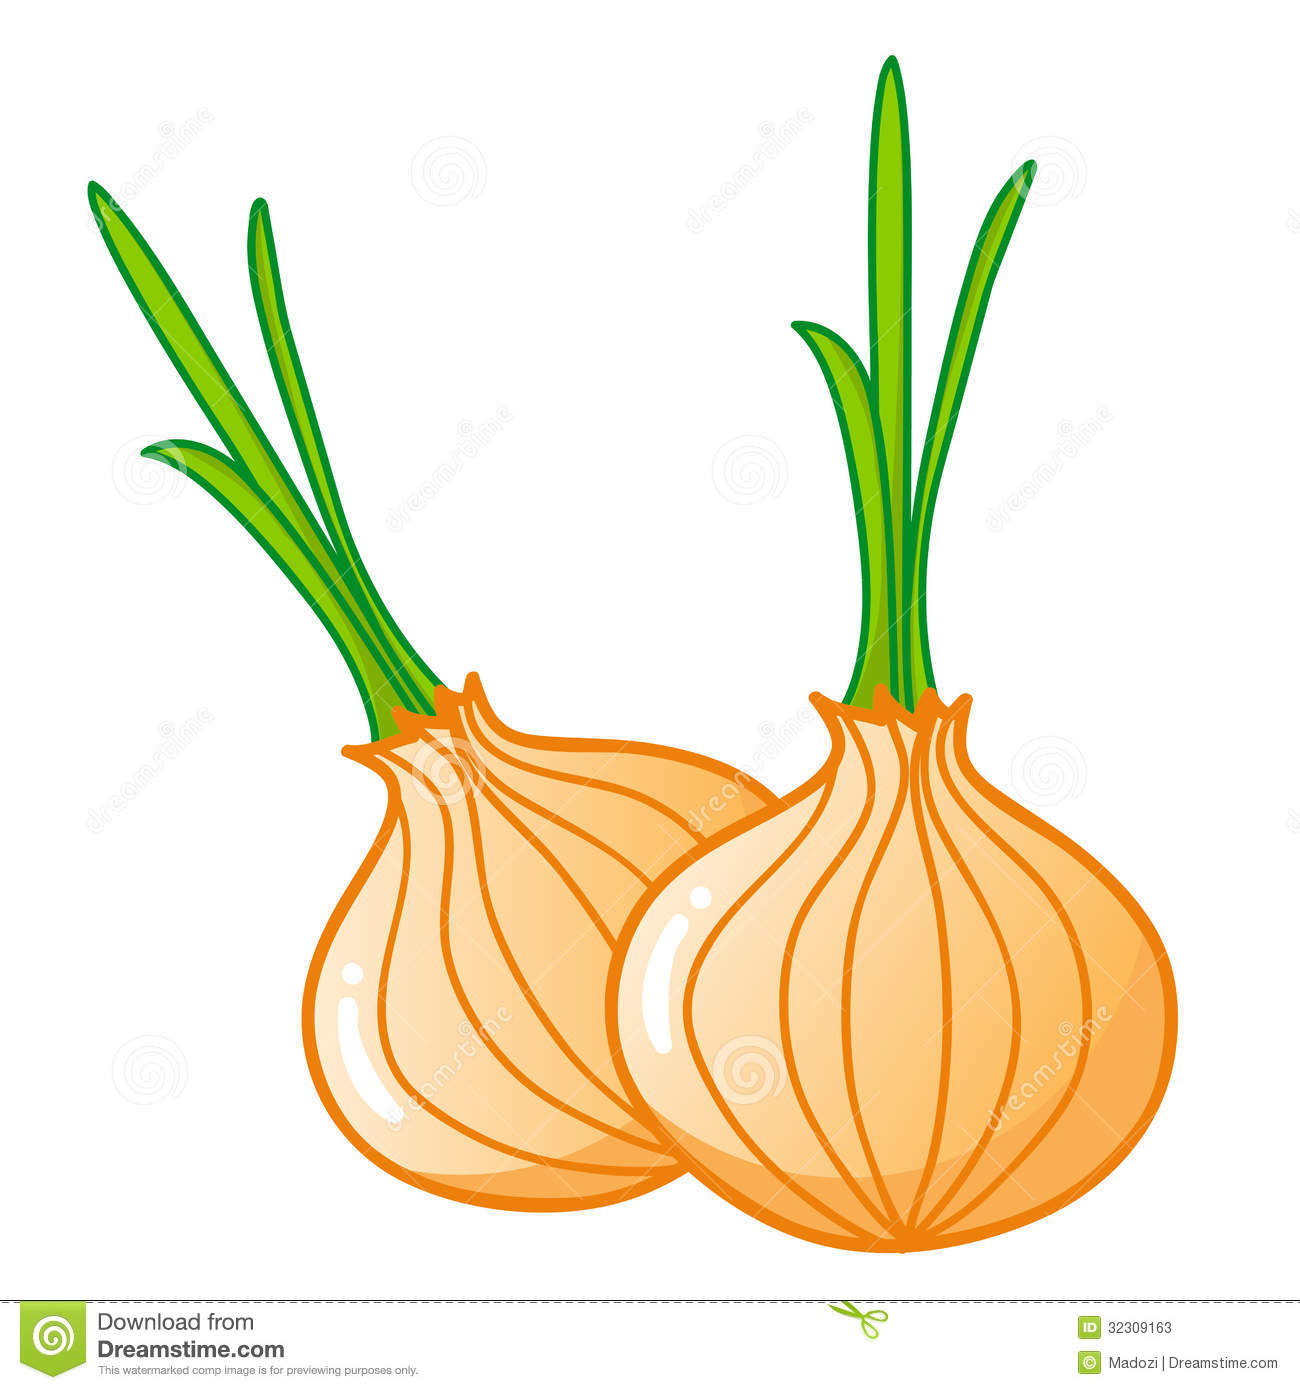 onion-clipart-onions-isolated-illustration-white-background-32309163    Onion Clipart